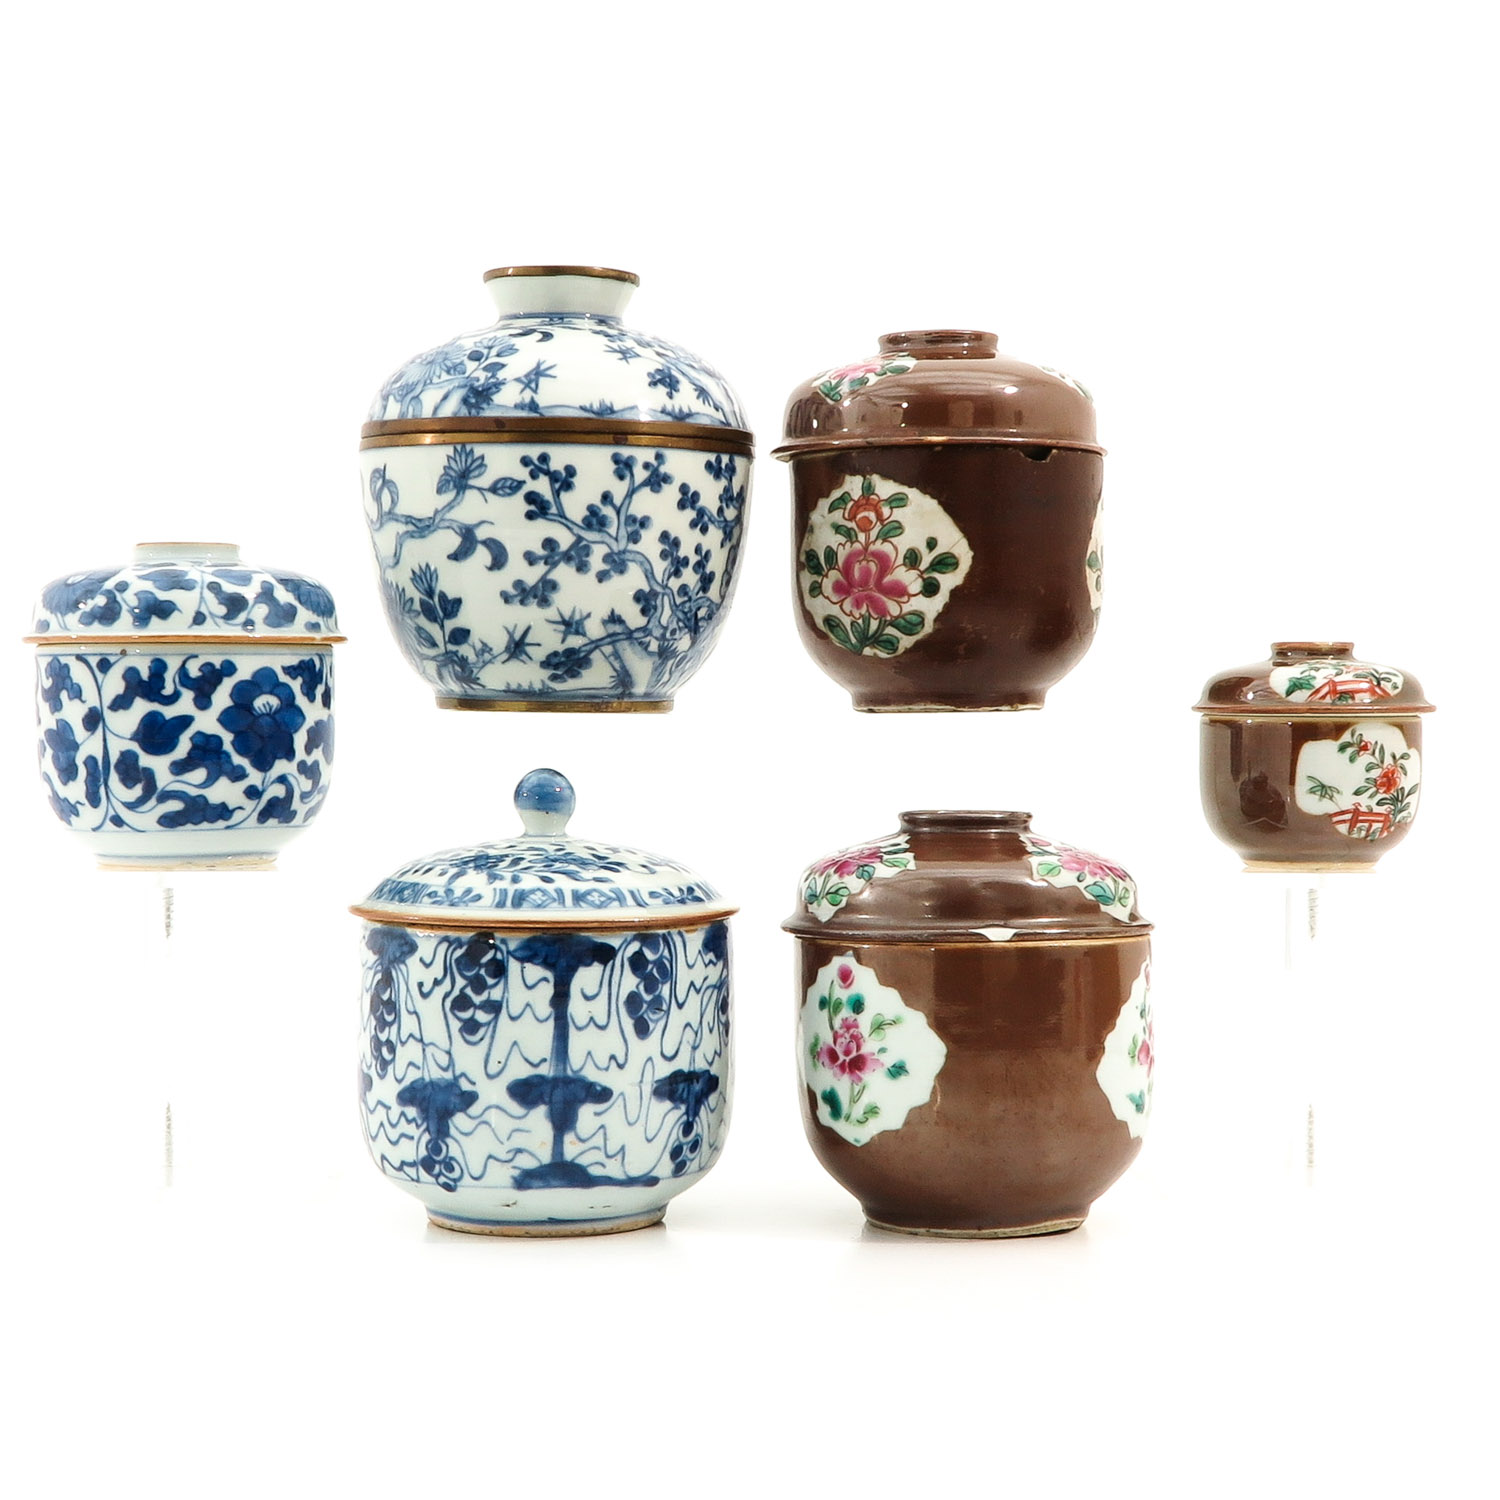 A Collection of Jars with Covers - Image 3 of 10